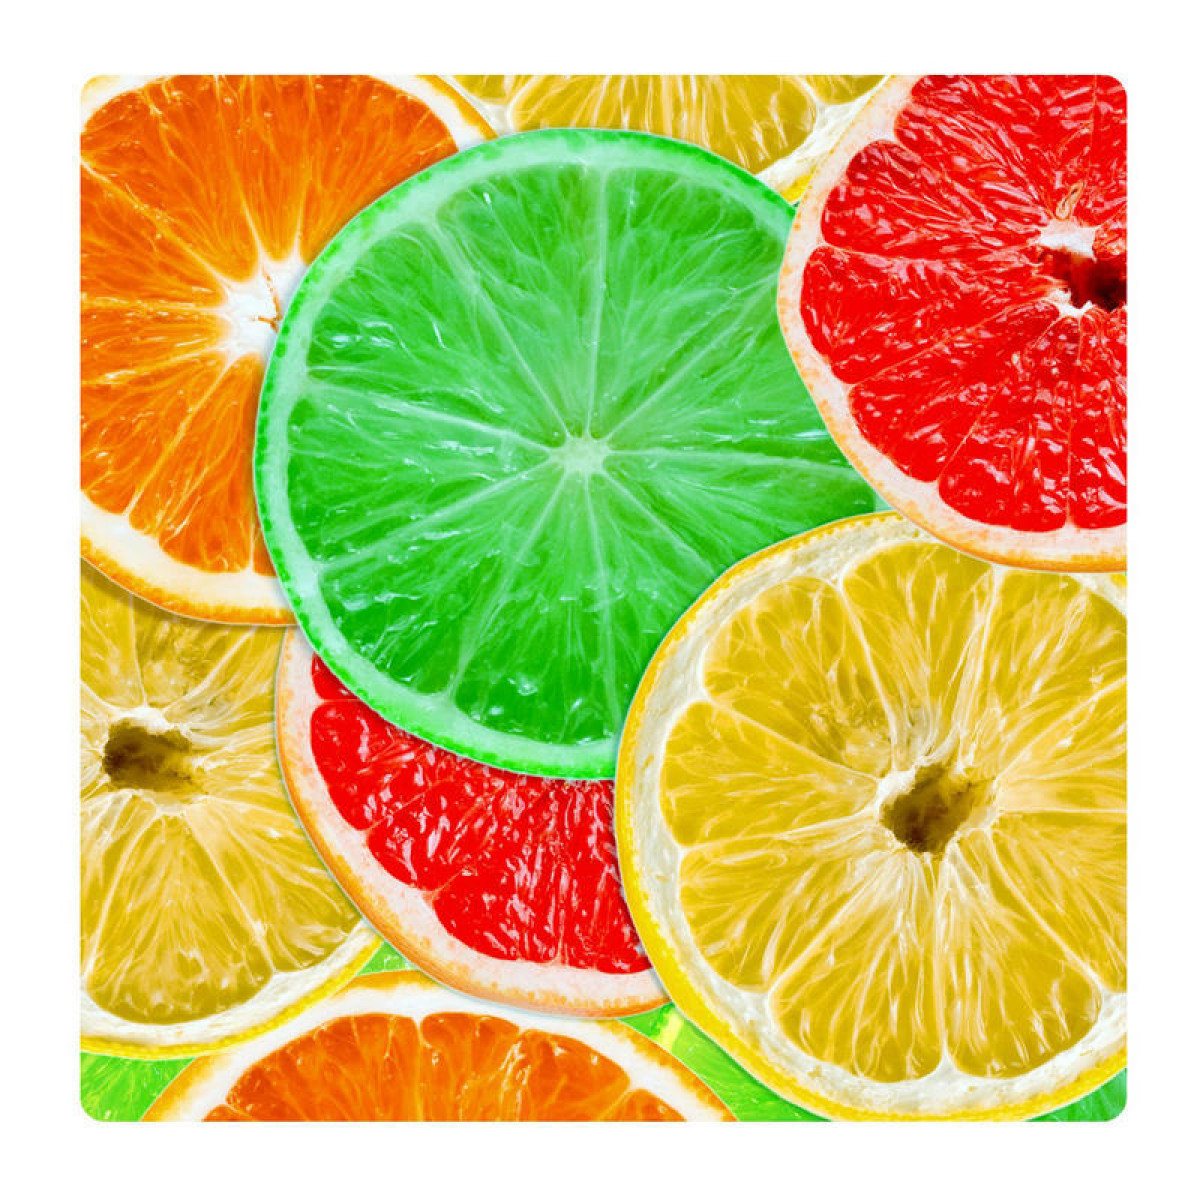 Colored limes, Photo pour accrocher au mur faite en plexiglass 19 x 19 cm